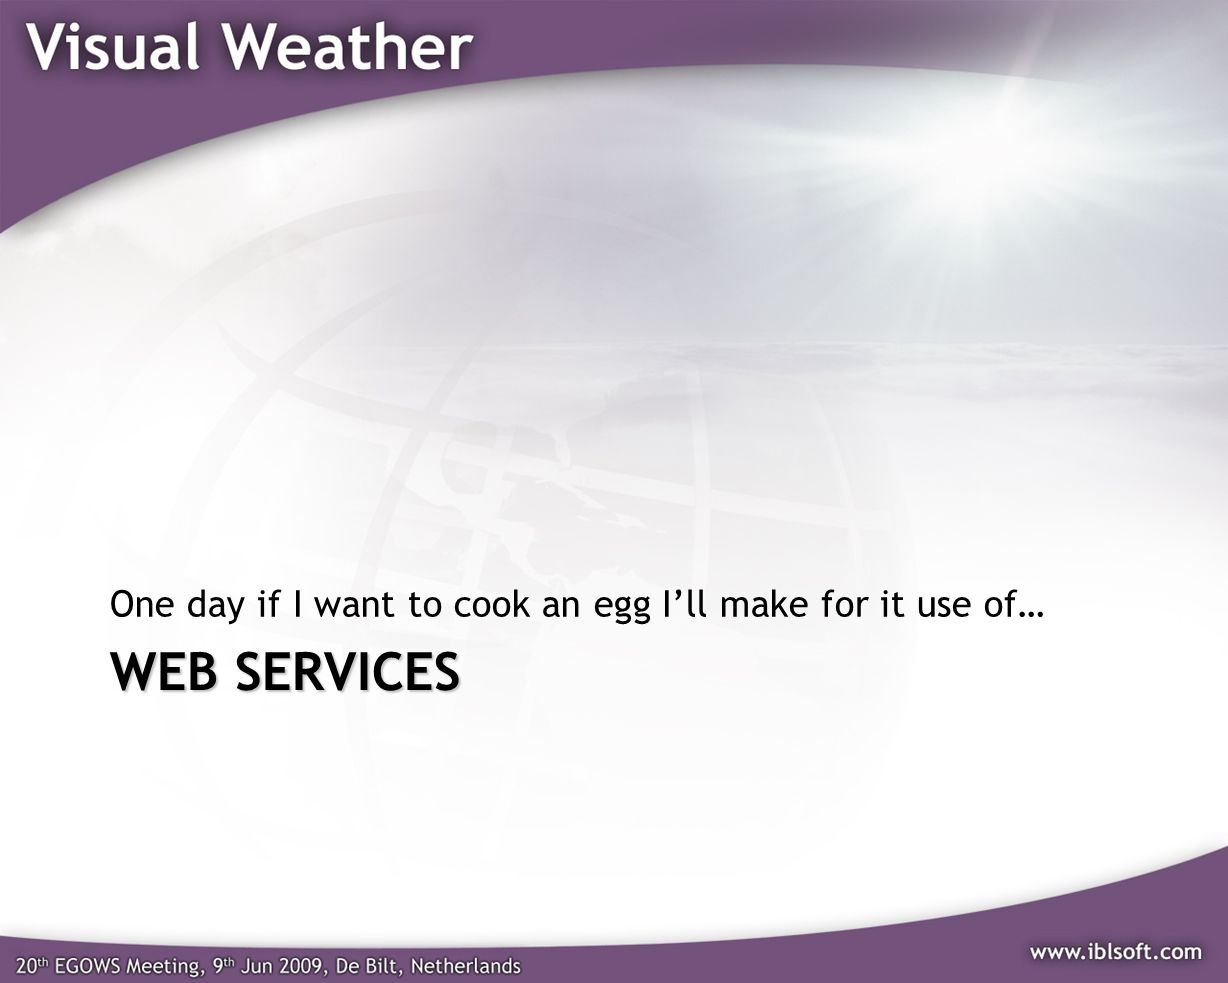 One day if I want to cook an egg I'll make for it use of…